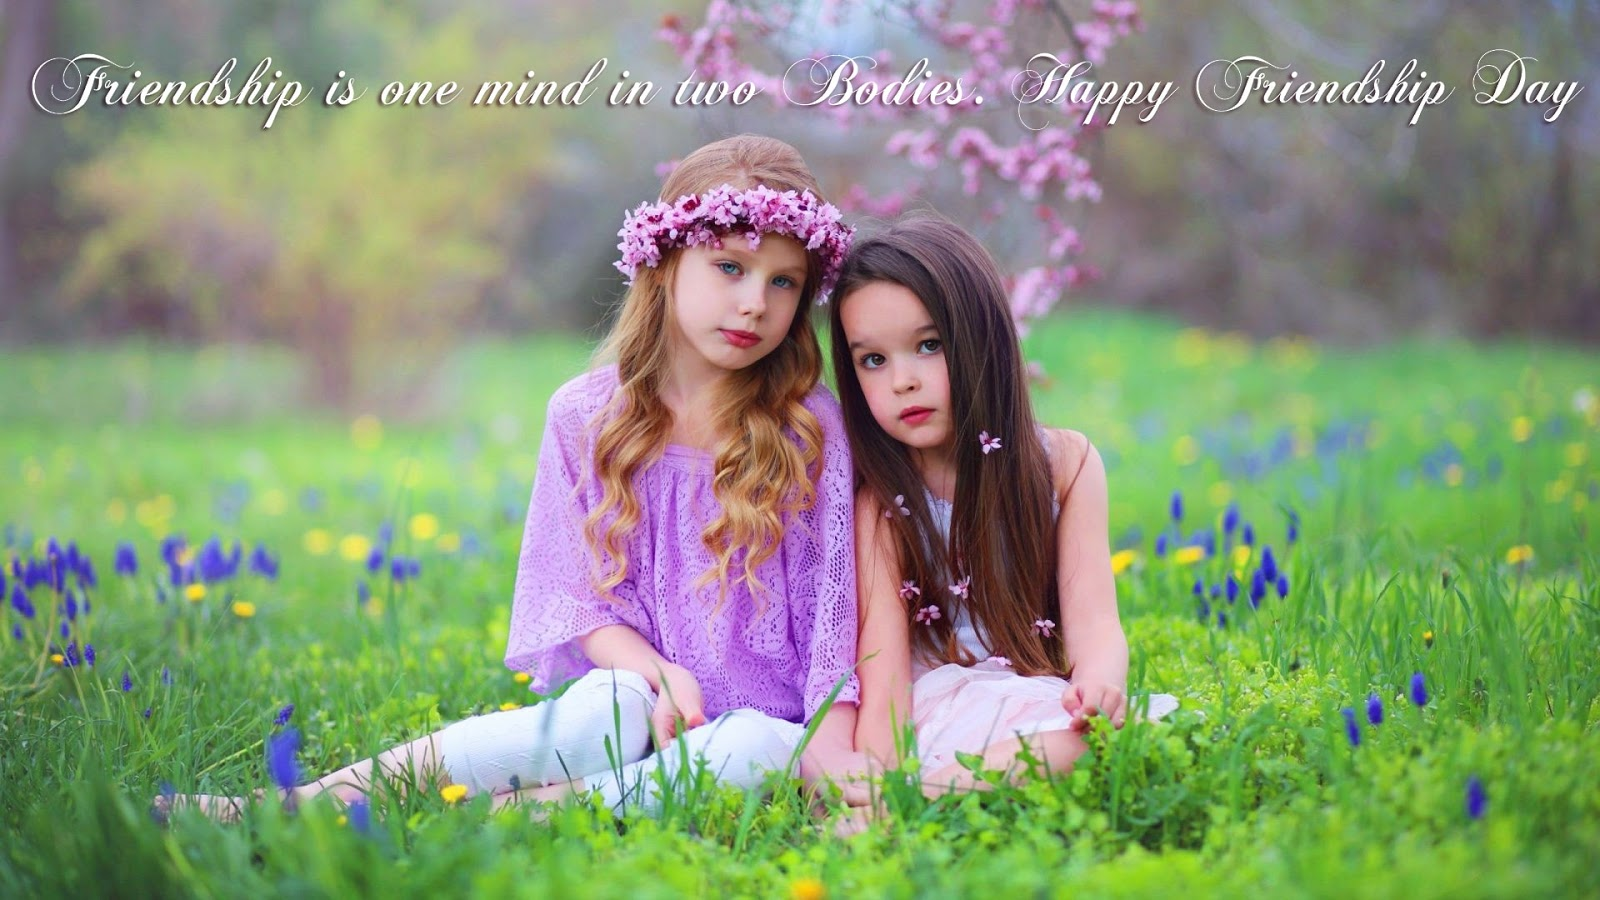 Beautiful-Friendship-Day-HD-Images-Wallpapers-Free-Download